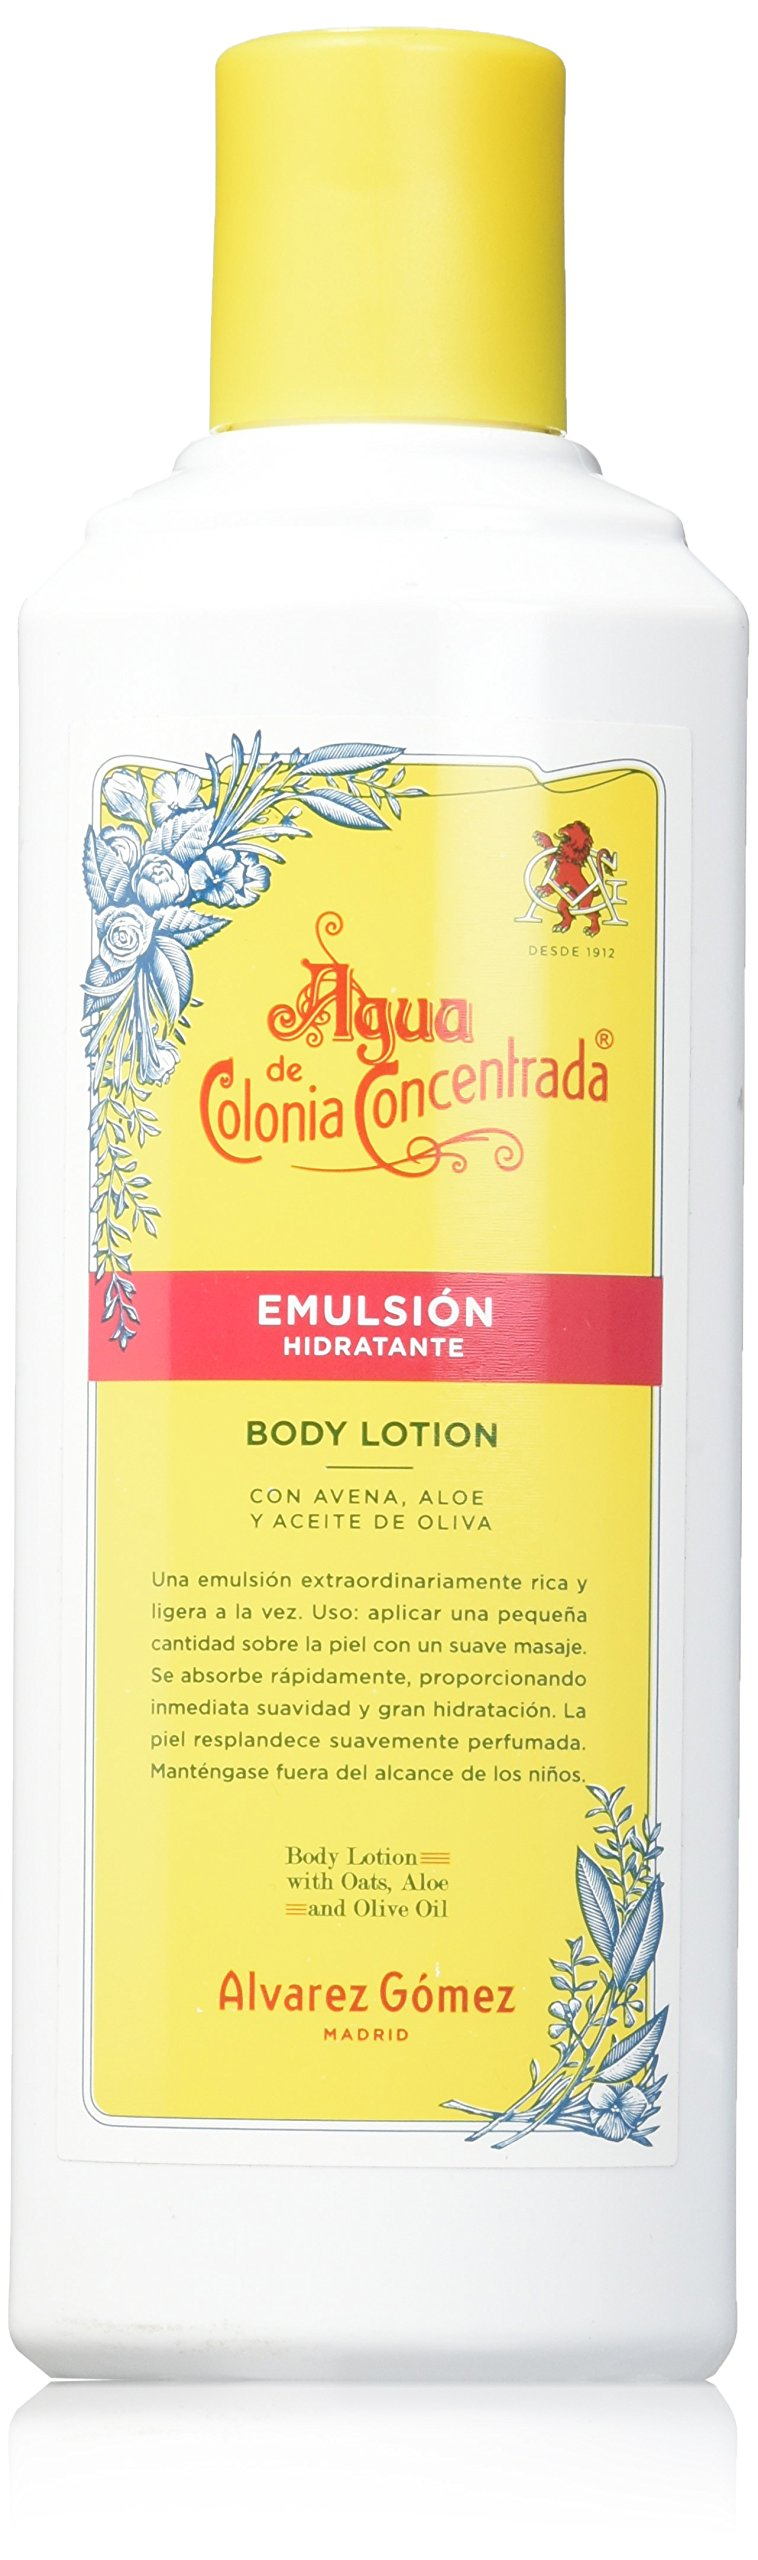 Aqua De Colonia Concentrada By Alvarez Gomez Body Lotion 10.58 oz